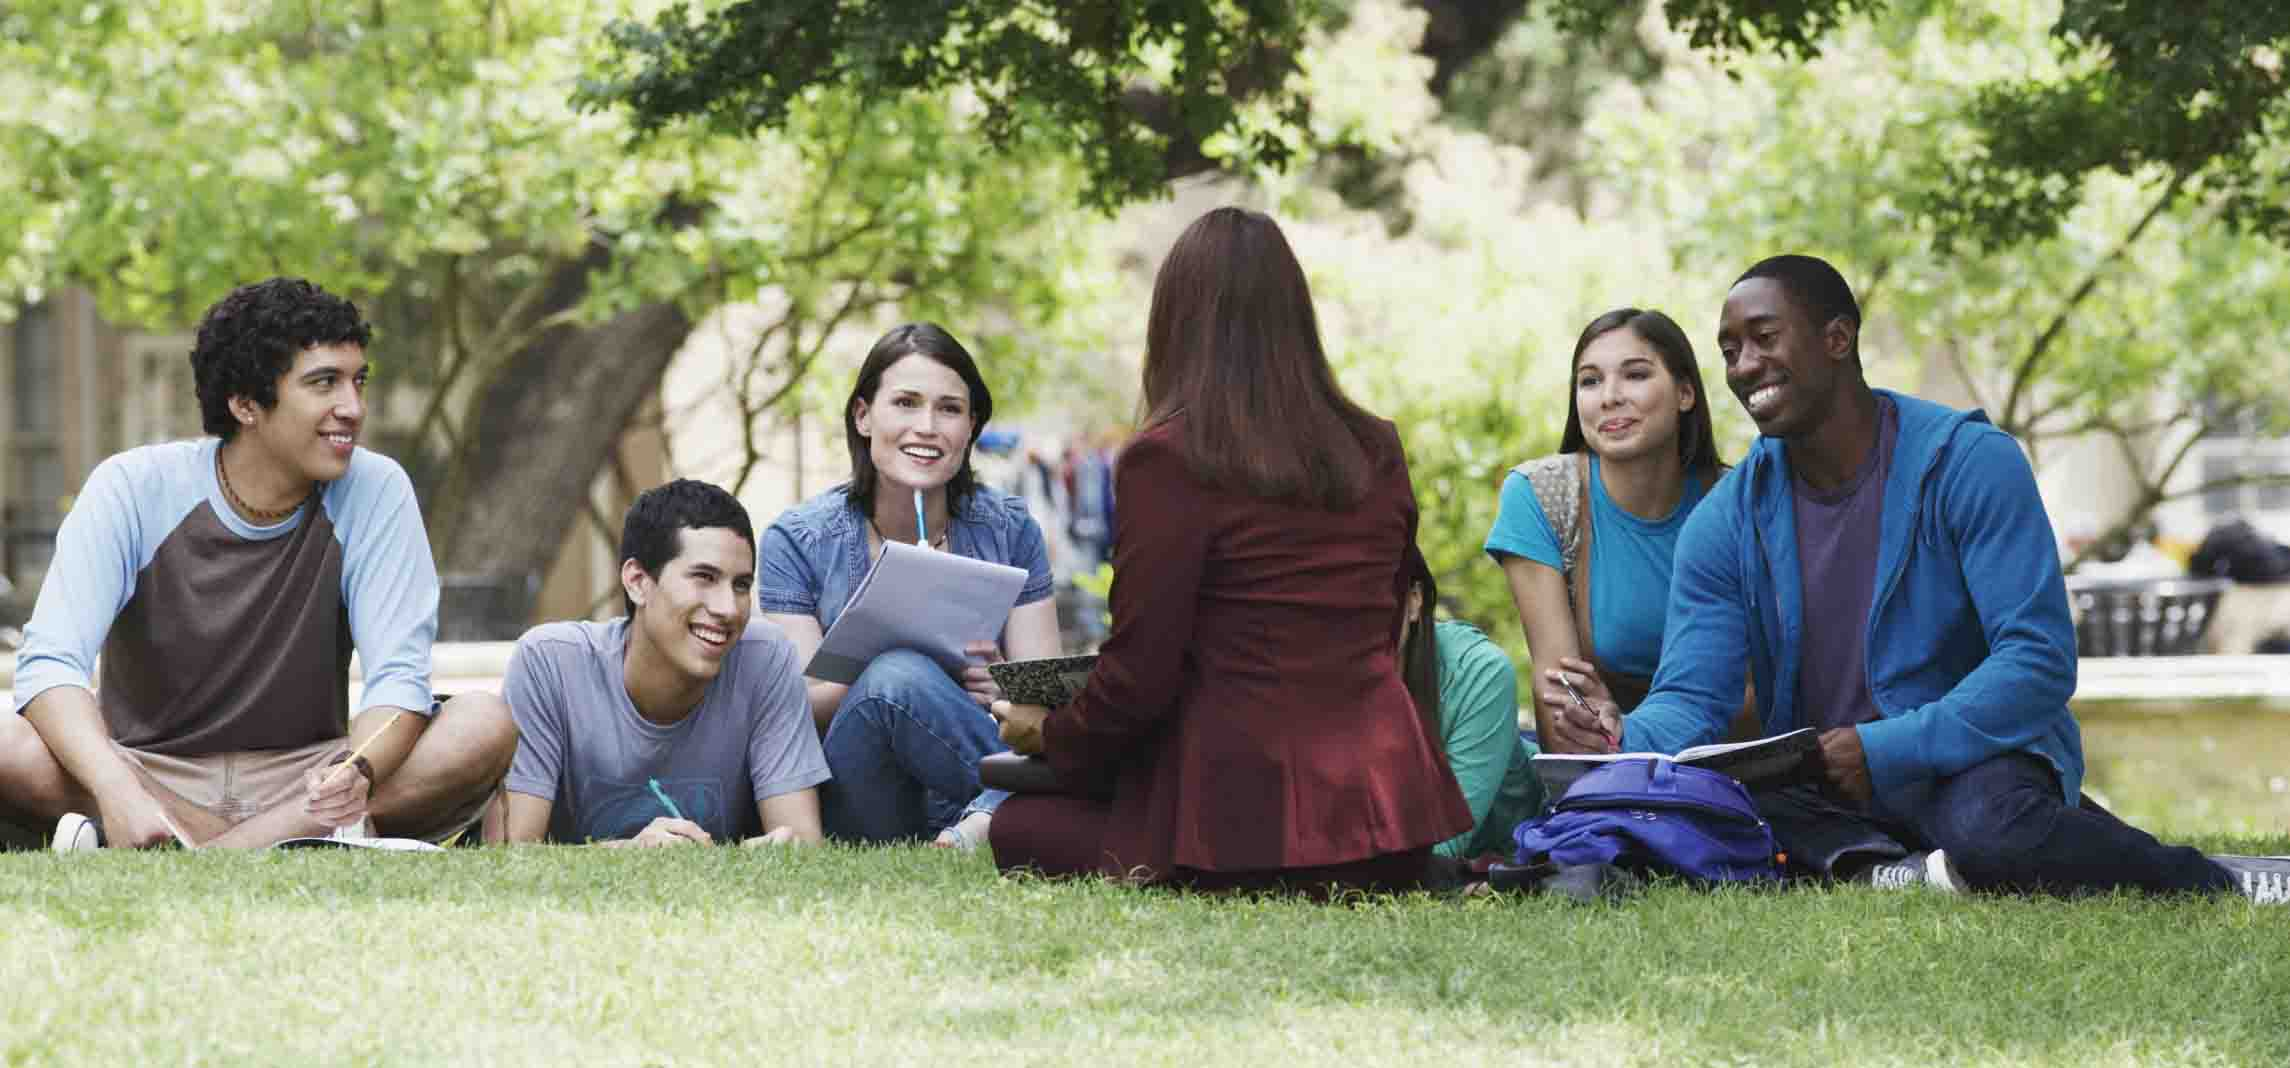 The Threes: 3 Ways to Connect with College-Age Students Coming Home for the Summer